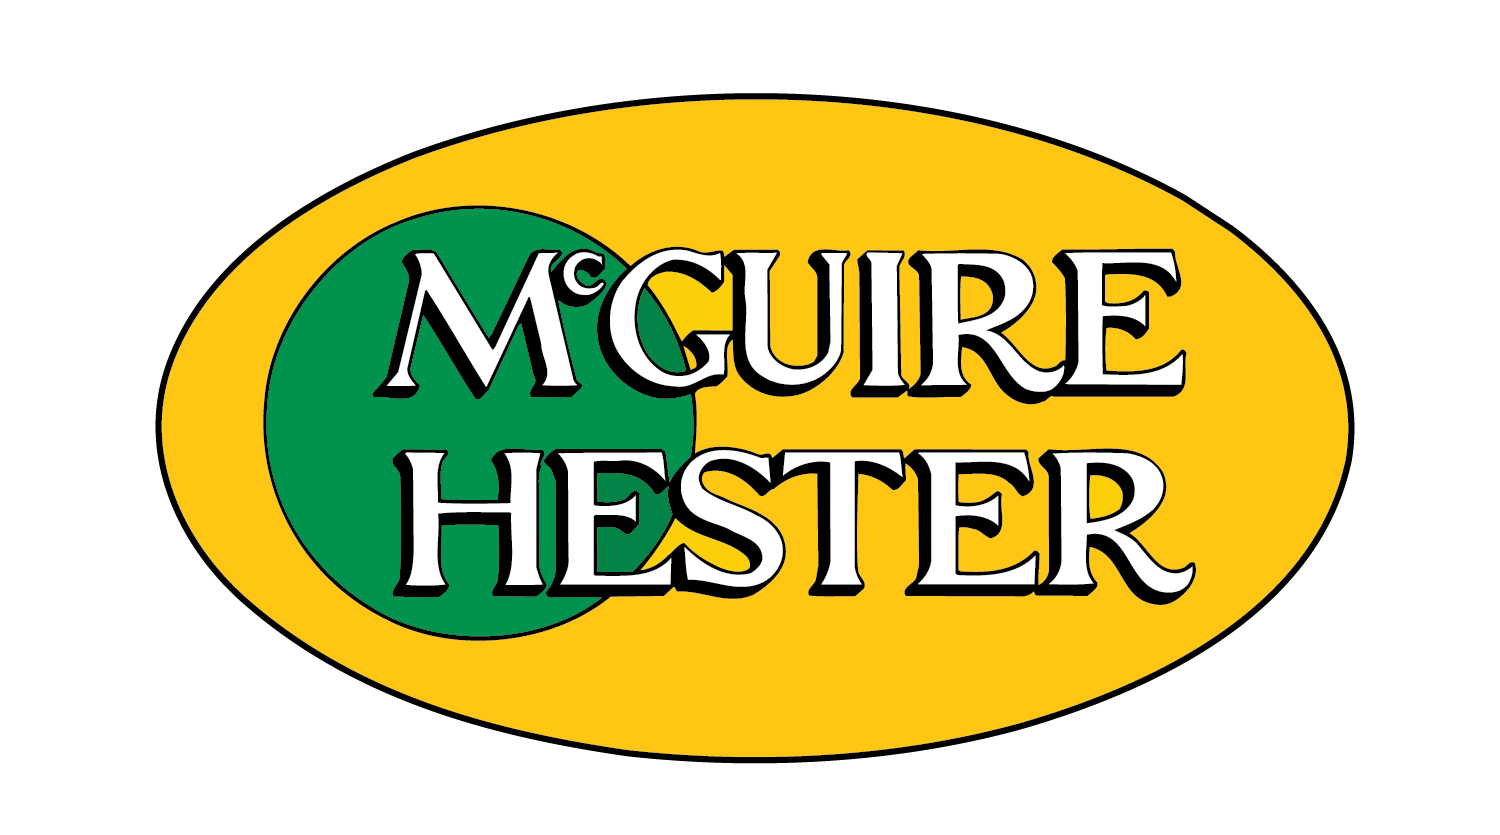 McGuire and Hester logo